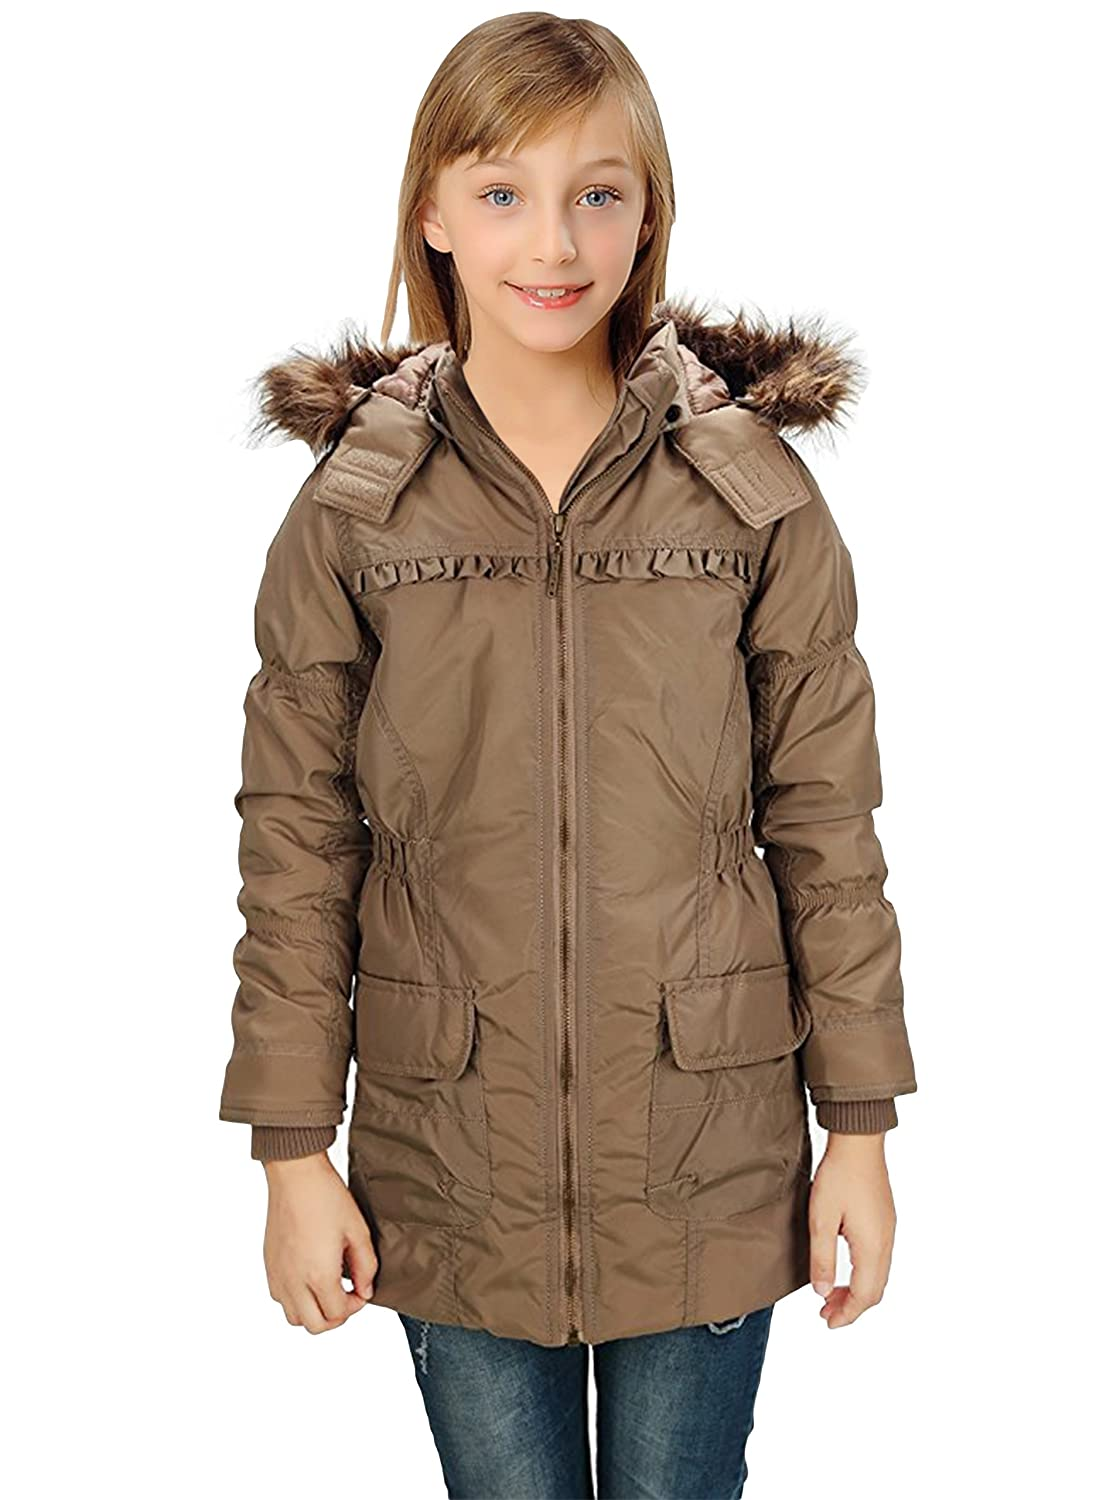 ZITY Big Girls Winter Waterproof Padded Jacket with Pockets Belt and Fur Hooded Alipolo-201501113001-CA